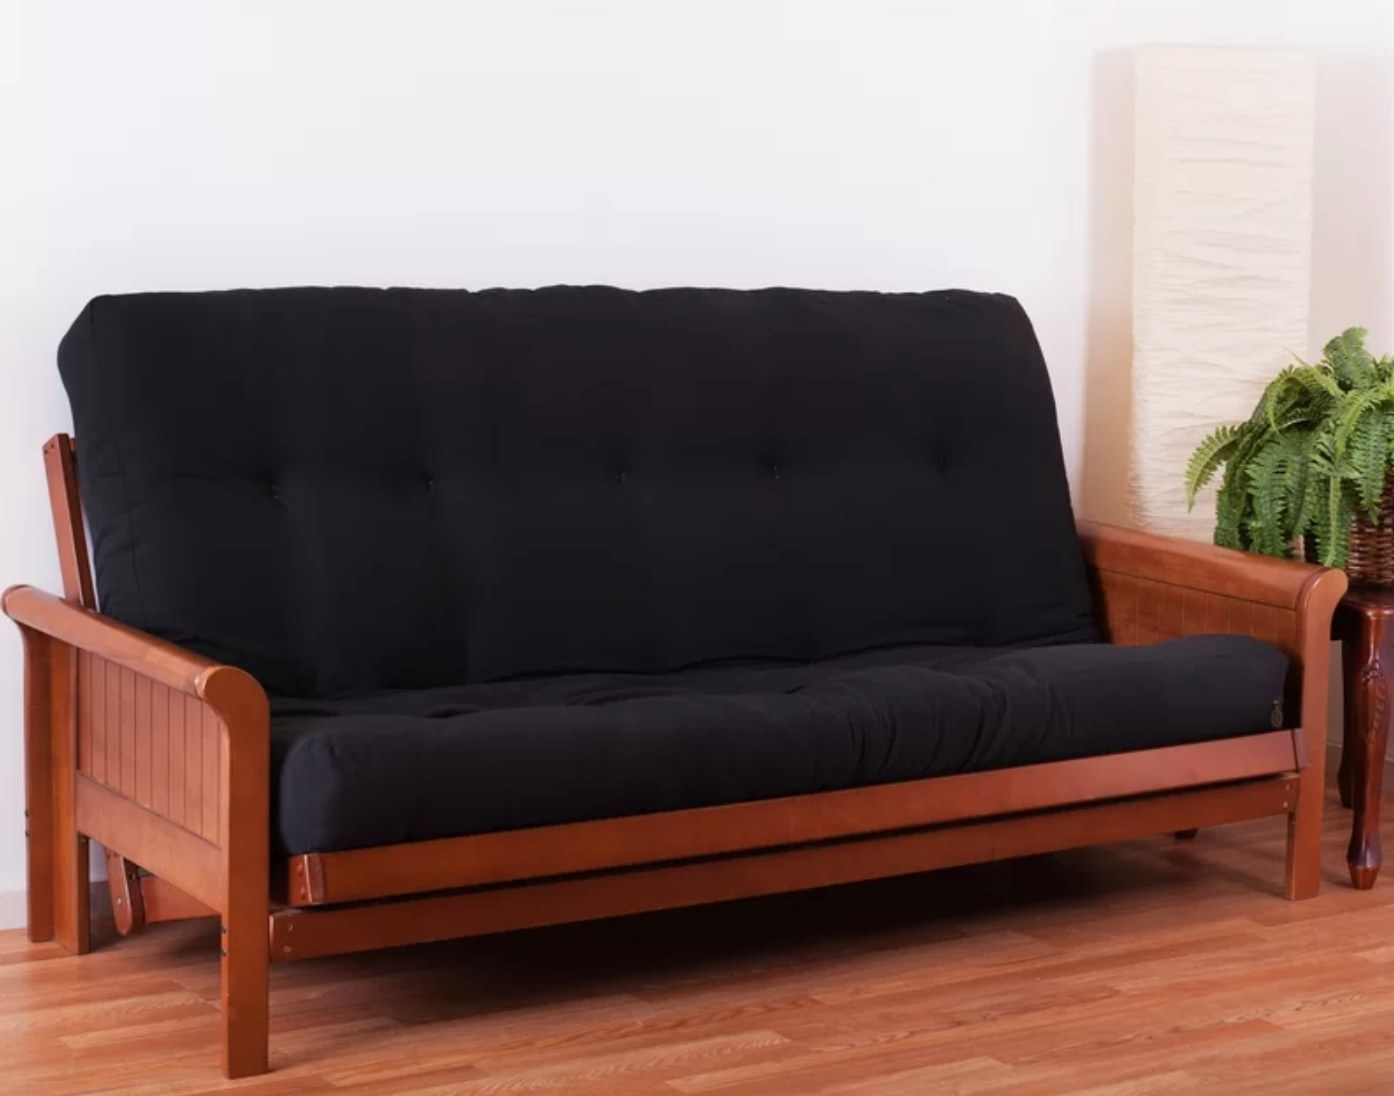 the foam futton in black with a wood frame